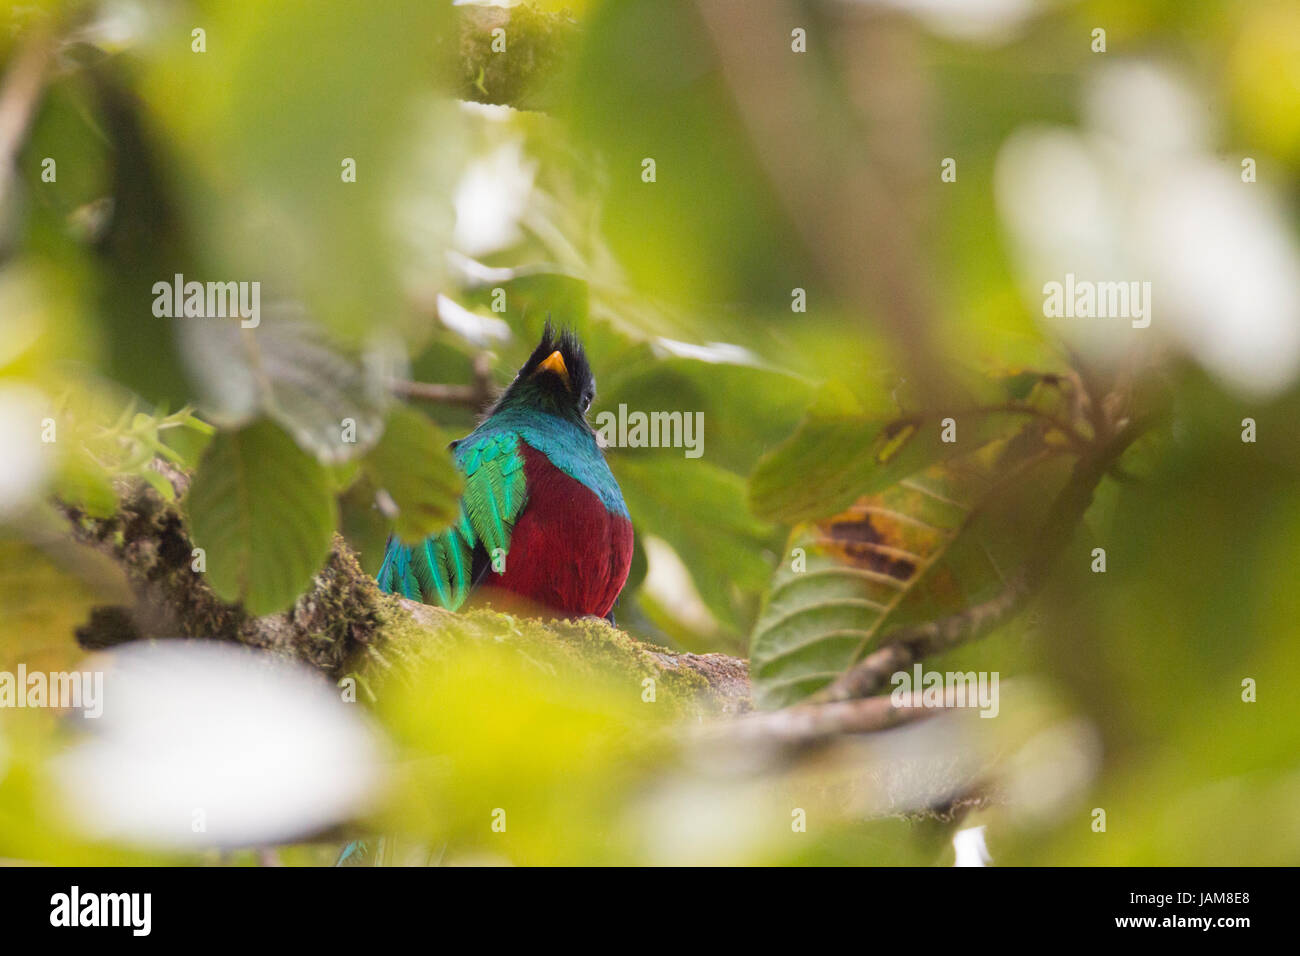 Resplendent Quetzel in an avocado tree in Monteverde Costa Rica rainforest - Stock Image